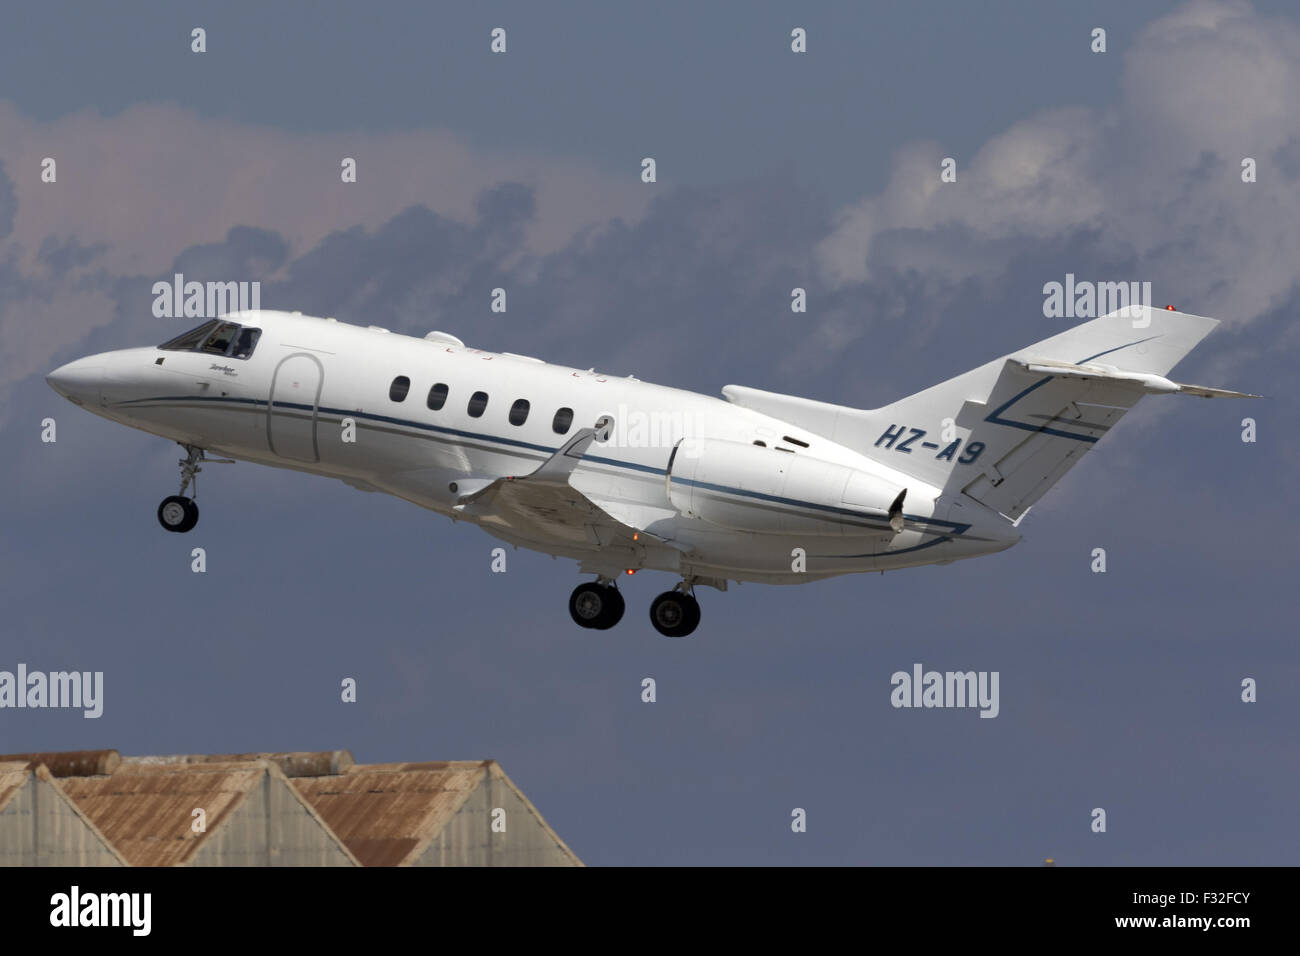 A Private Hawker 800XP taking off from runway 31. - Stock Image